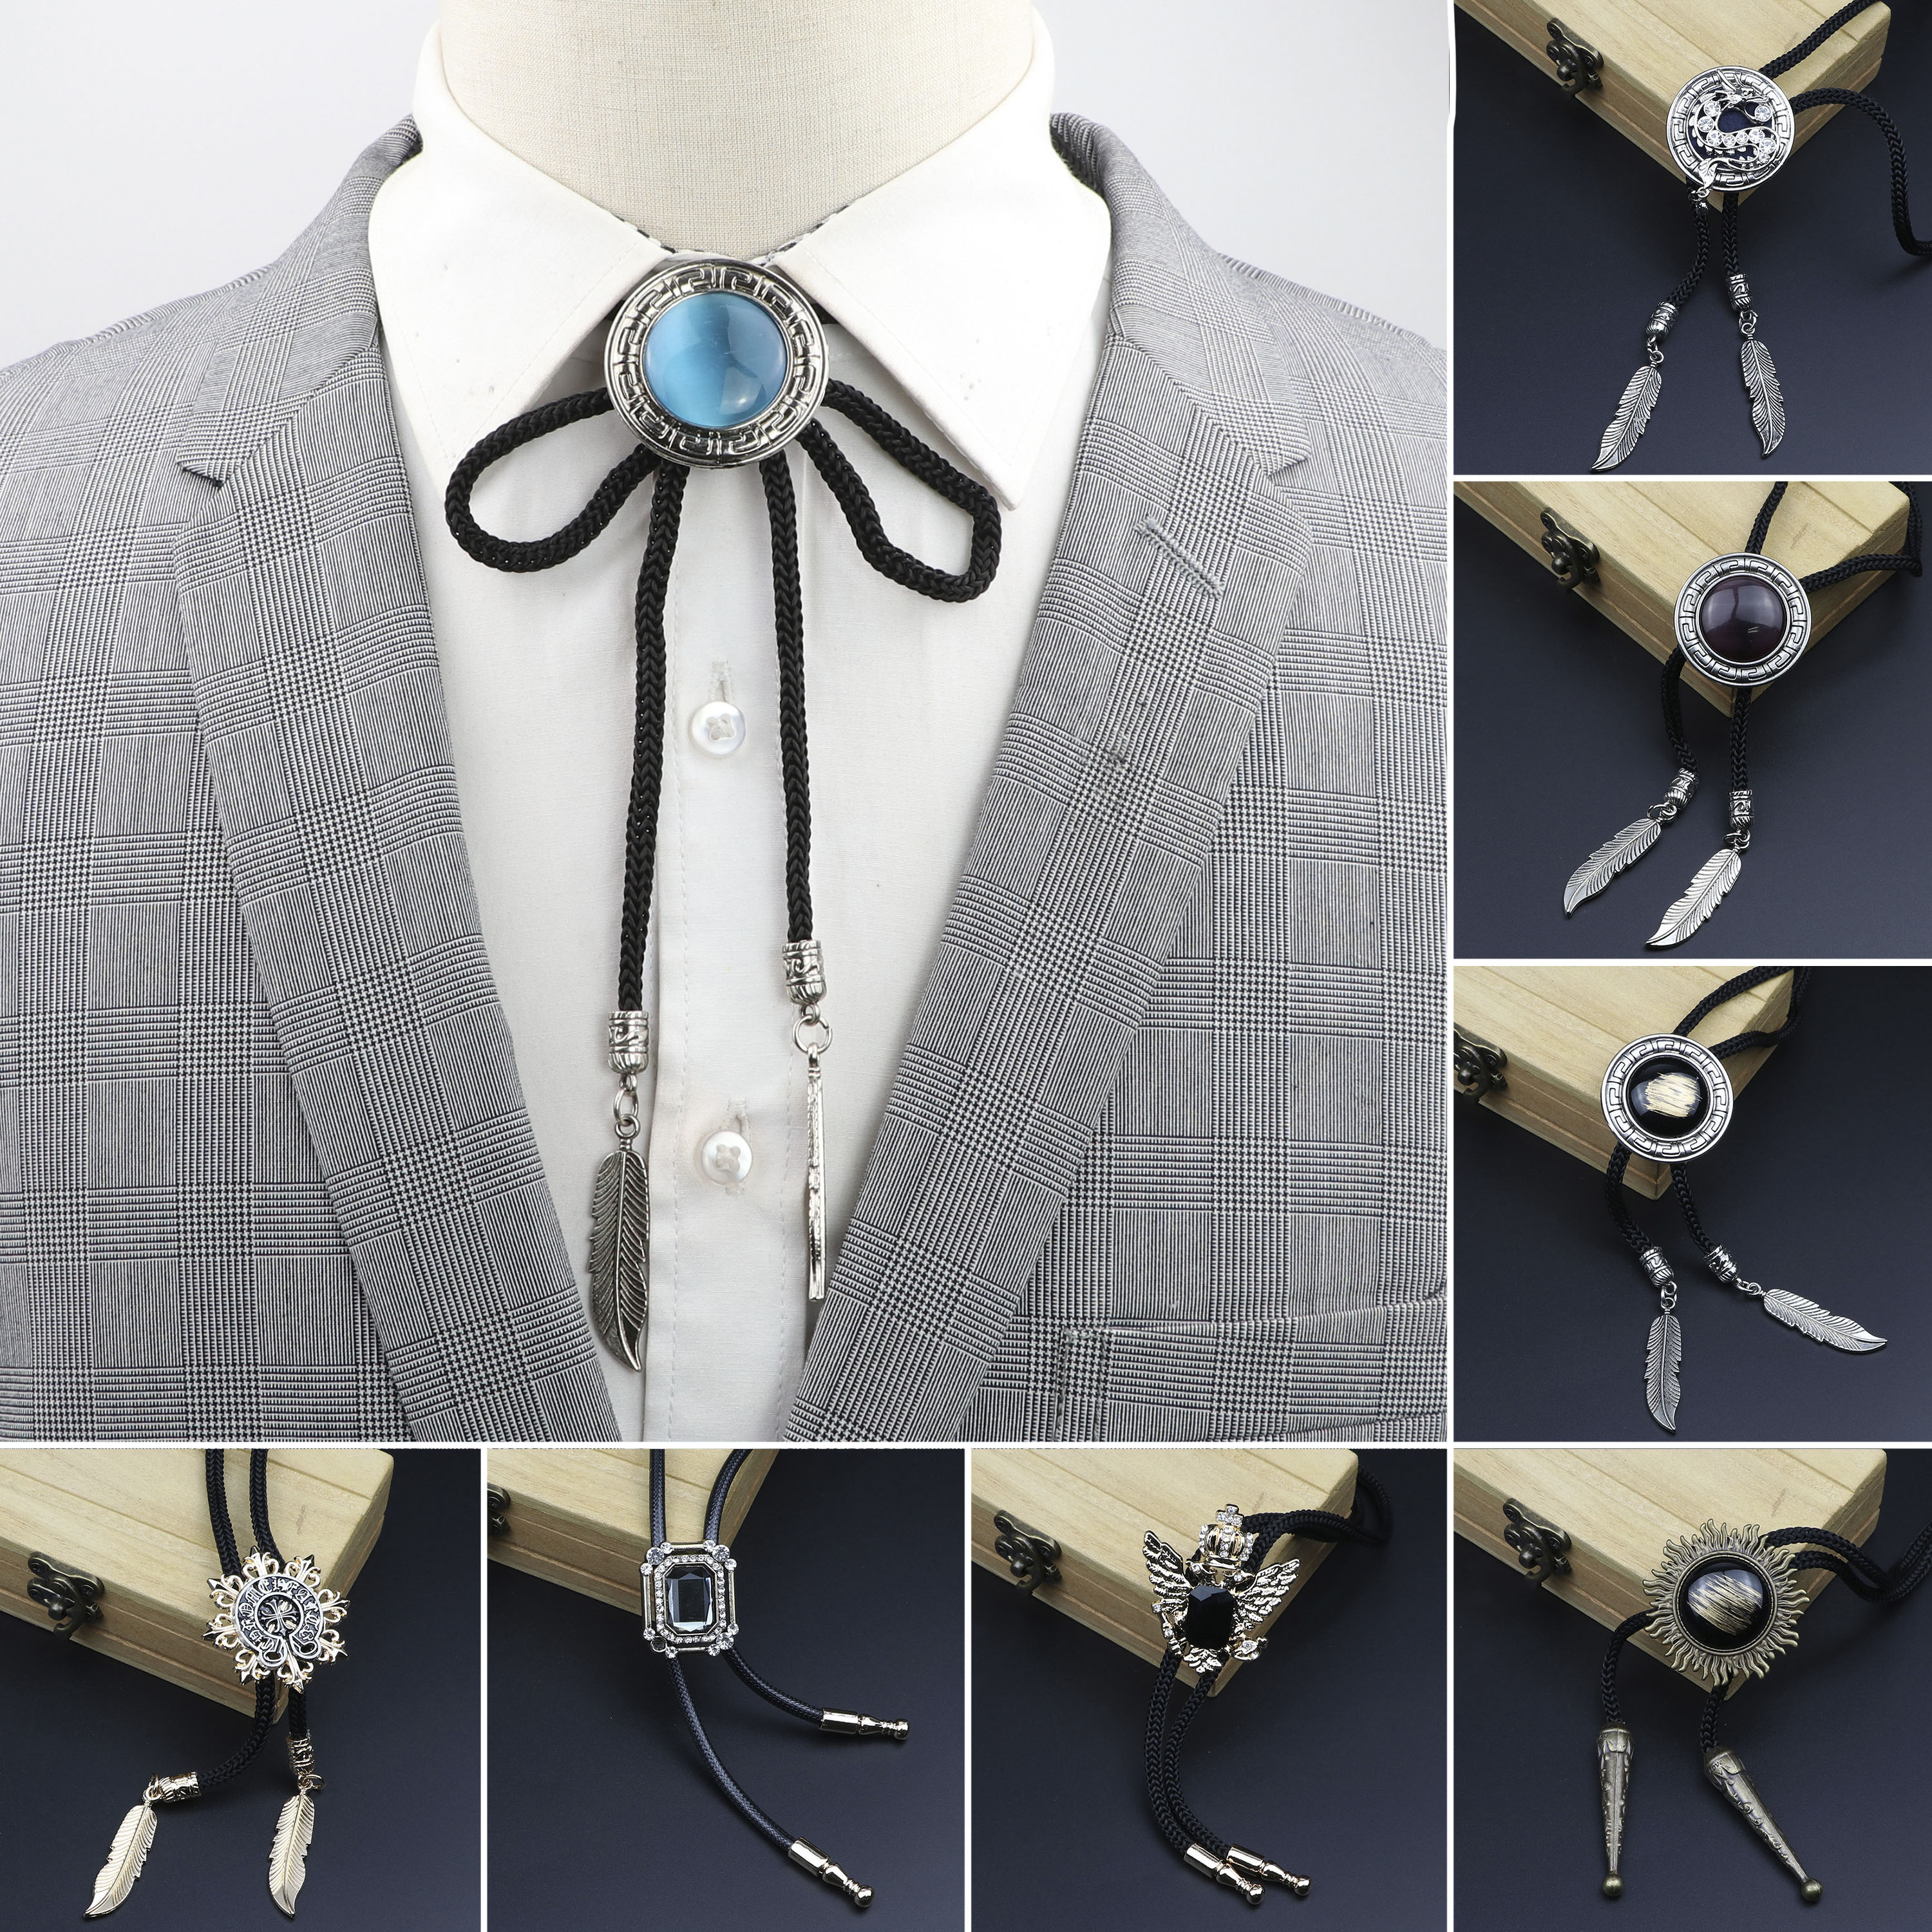 Oval New Trendy Mint Green Black Bolo Tie Western Cowboy Dress Shirt Accessory Jewelry Bolo-ties Necktie Necklace Gift For Men